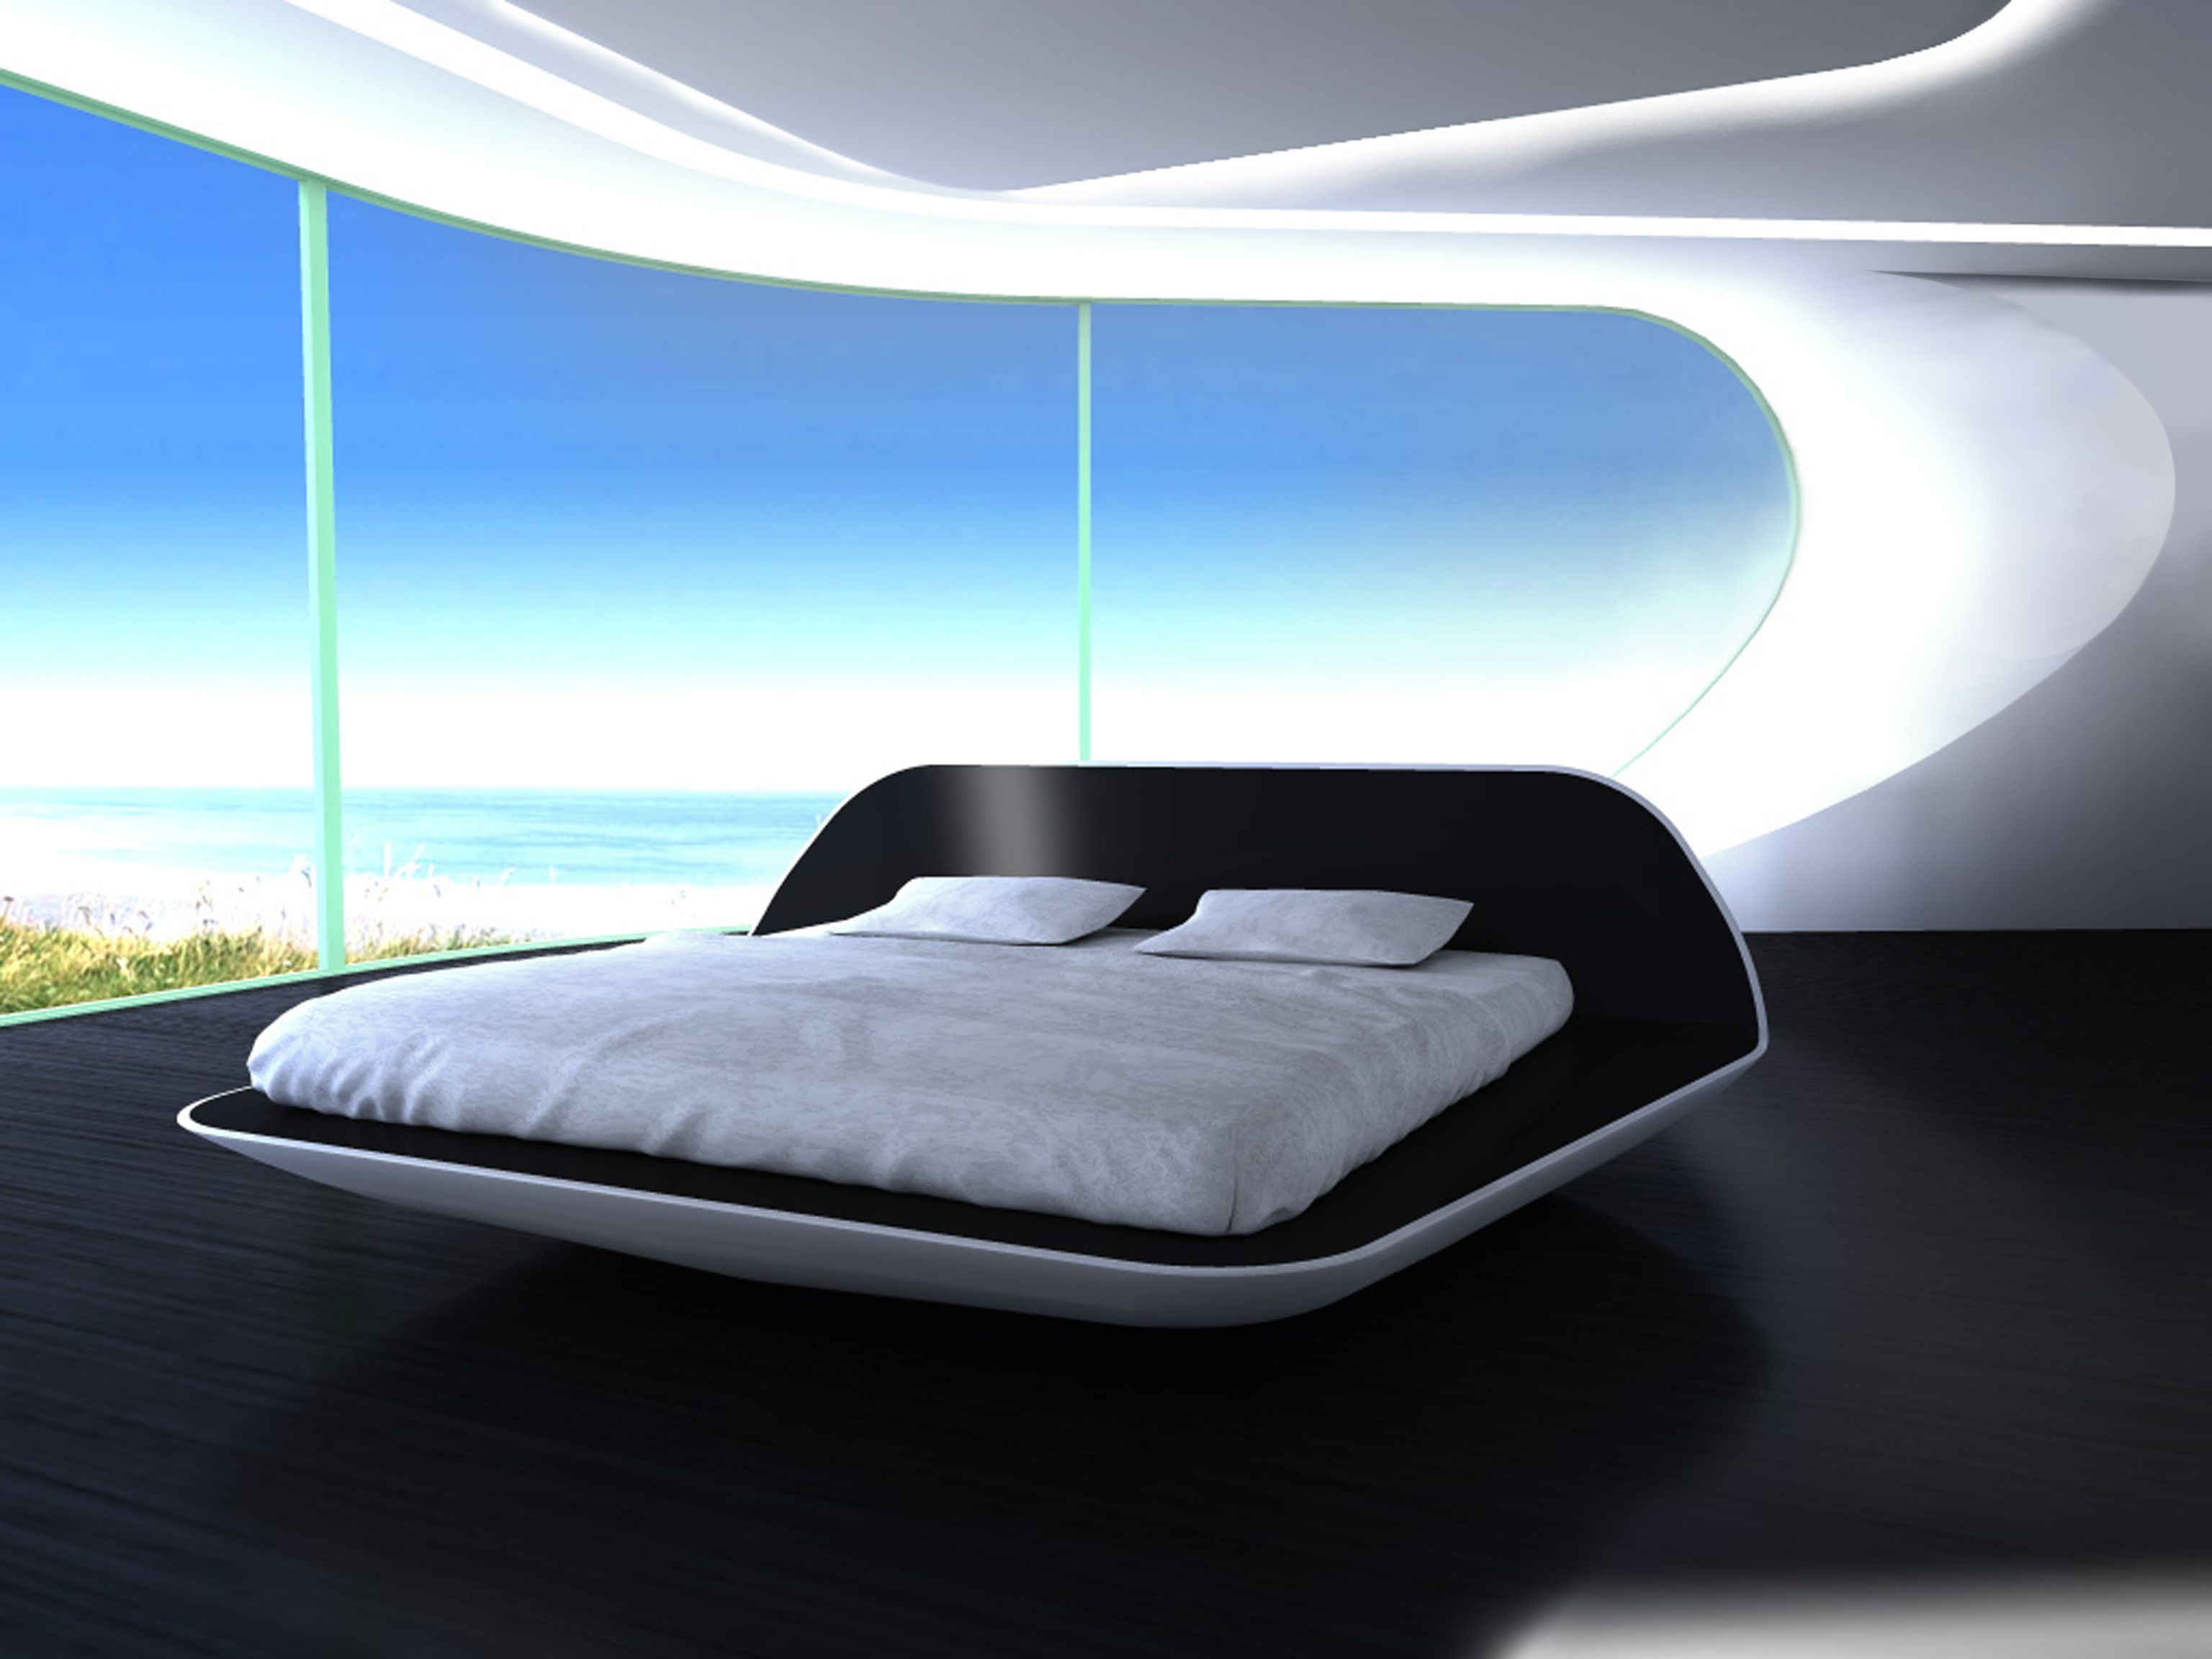 Futuristic Bed Or This Magetic And Floating In My Room